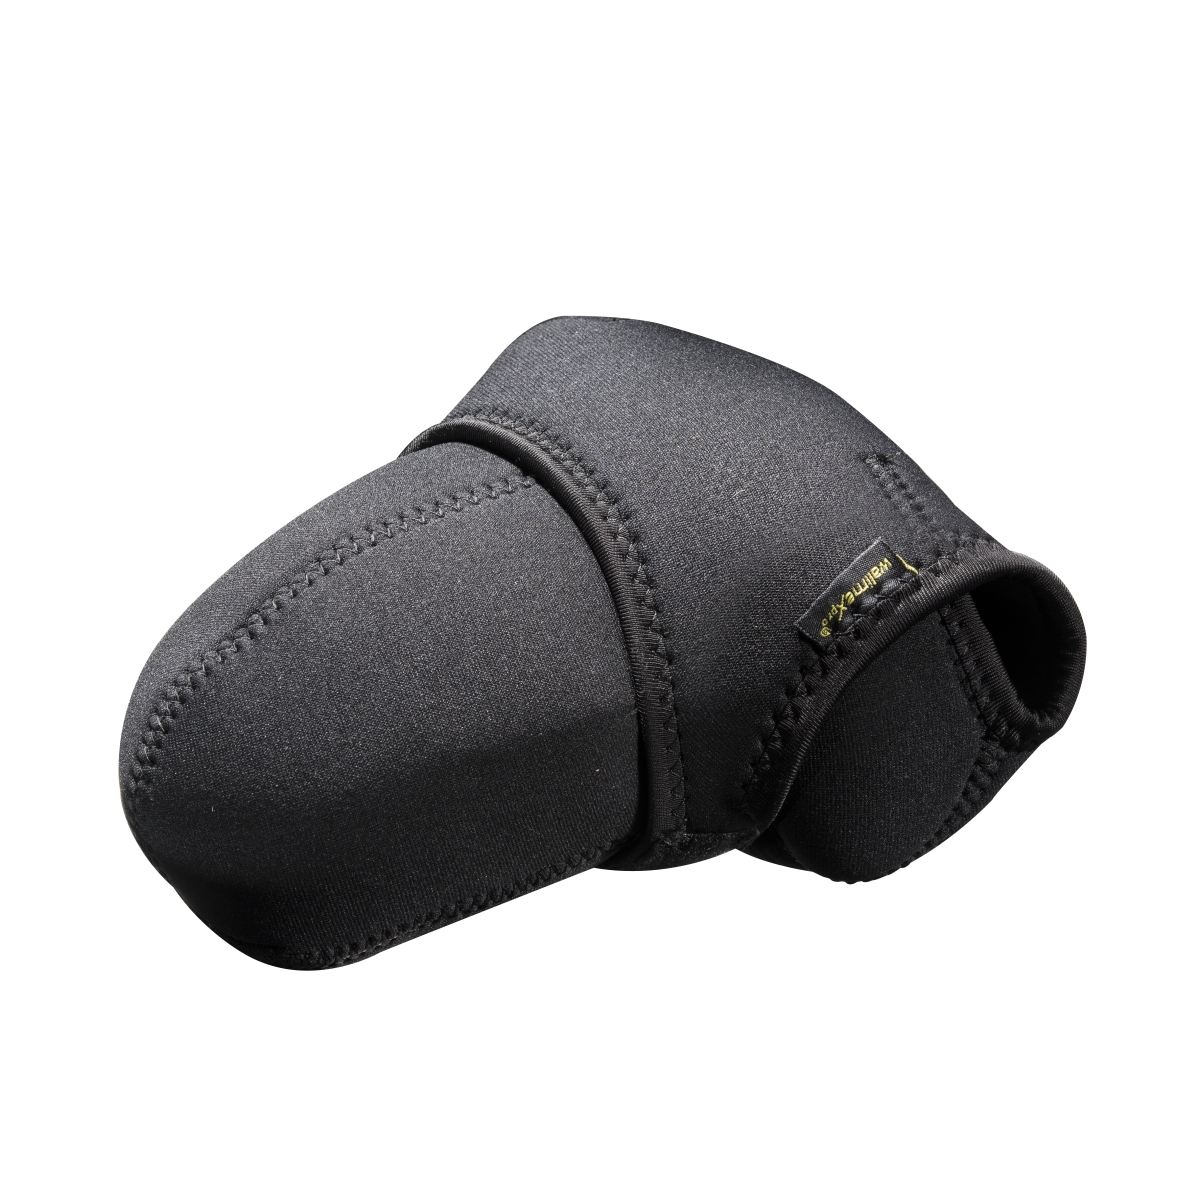 Walimex pro Neoprene Camera Protection Cover M